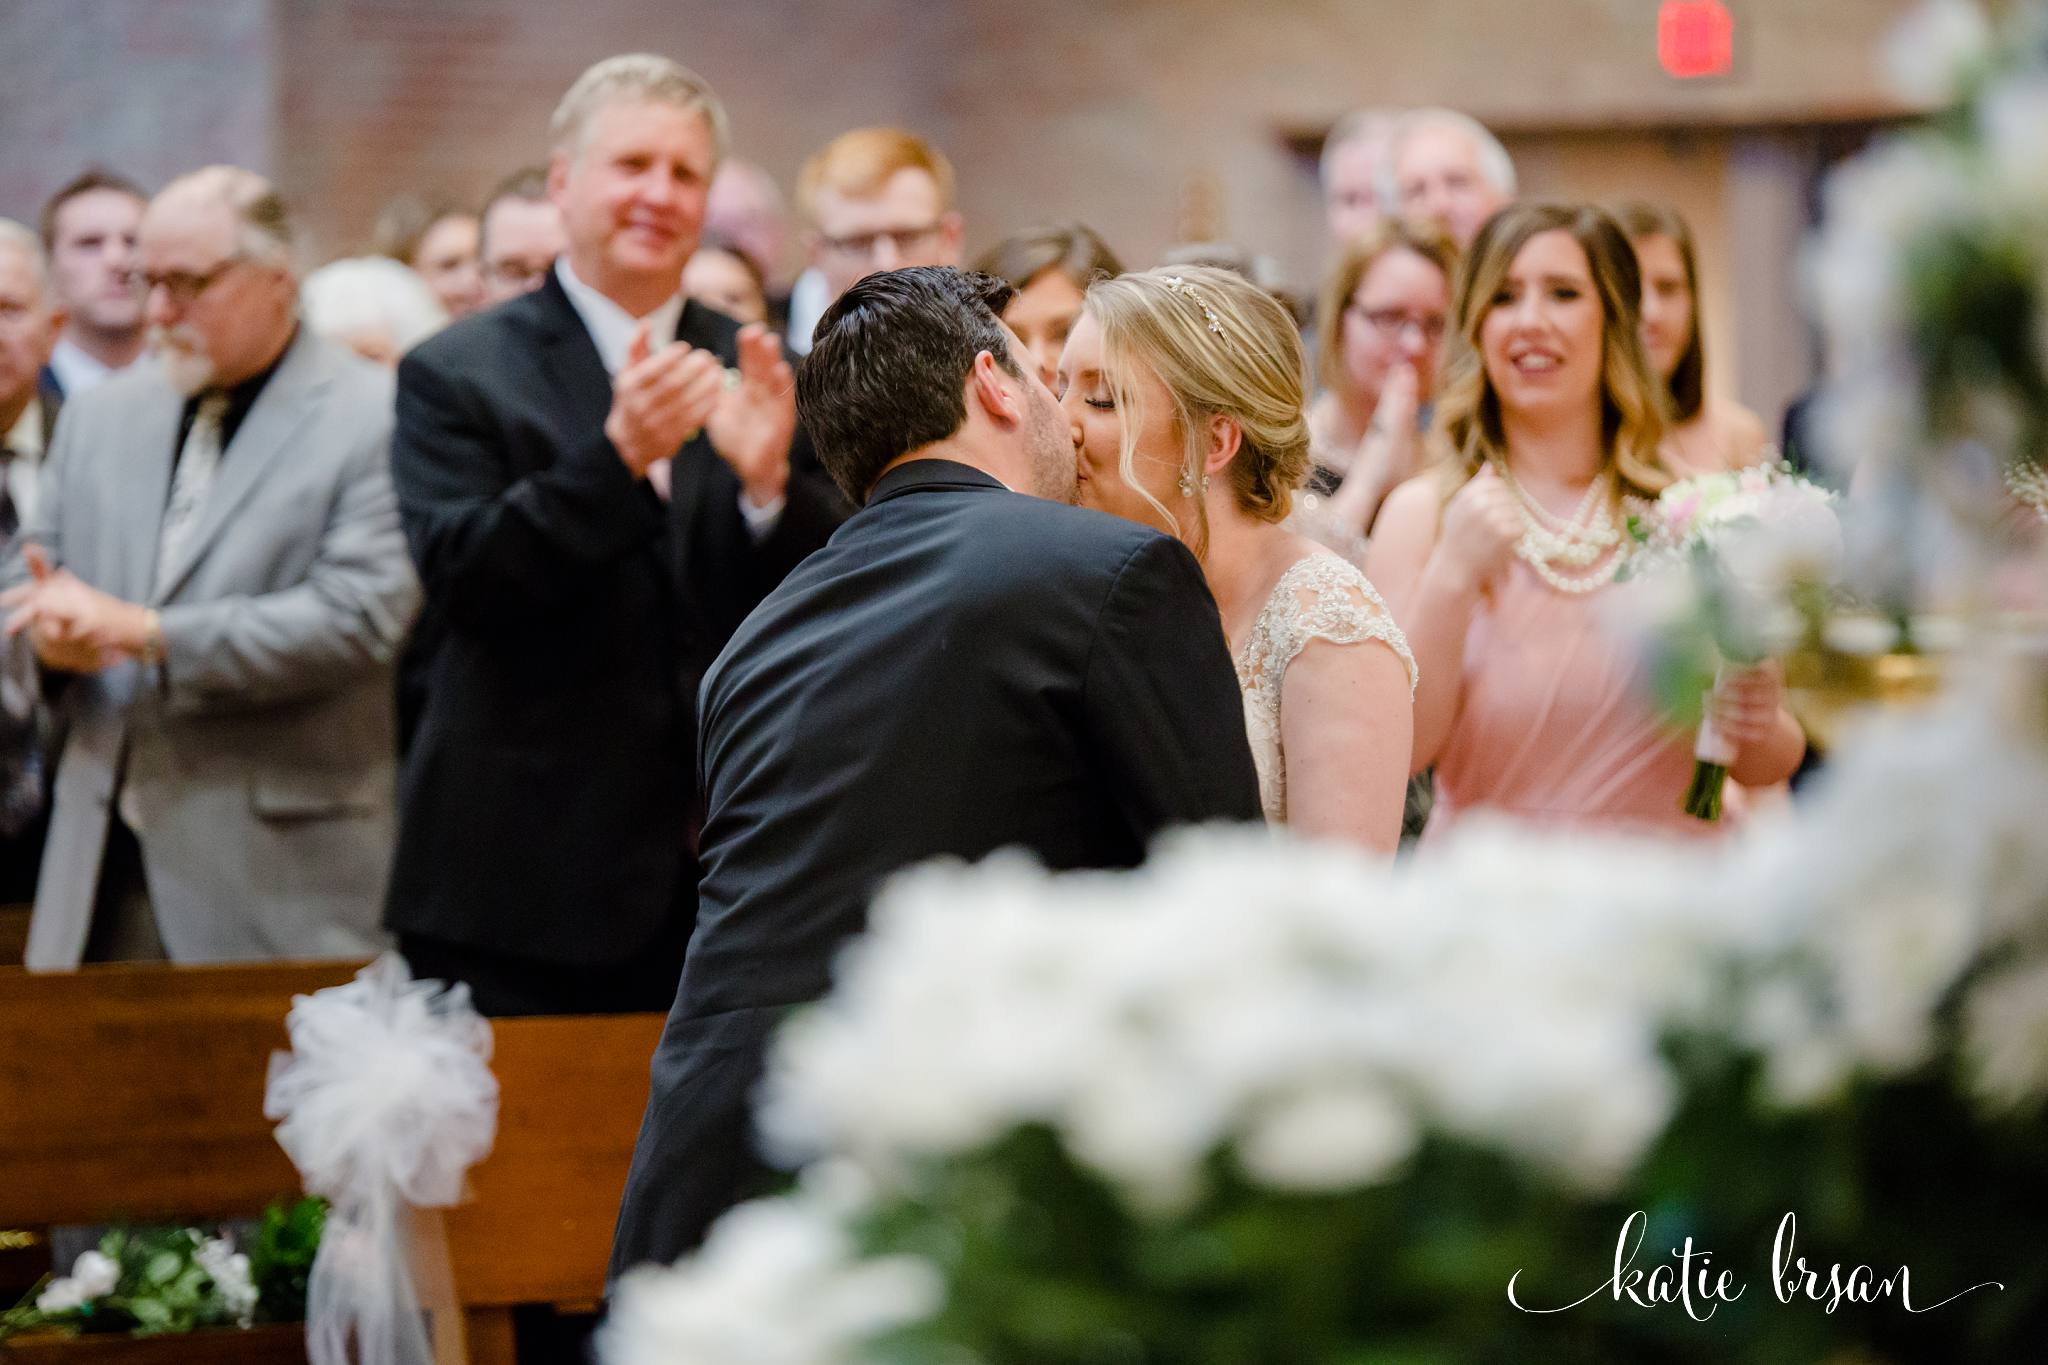 Mokena_Lemont_Wedding_Ruffled_Feathers_Wedding_1367.jpg